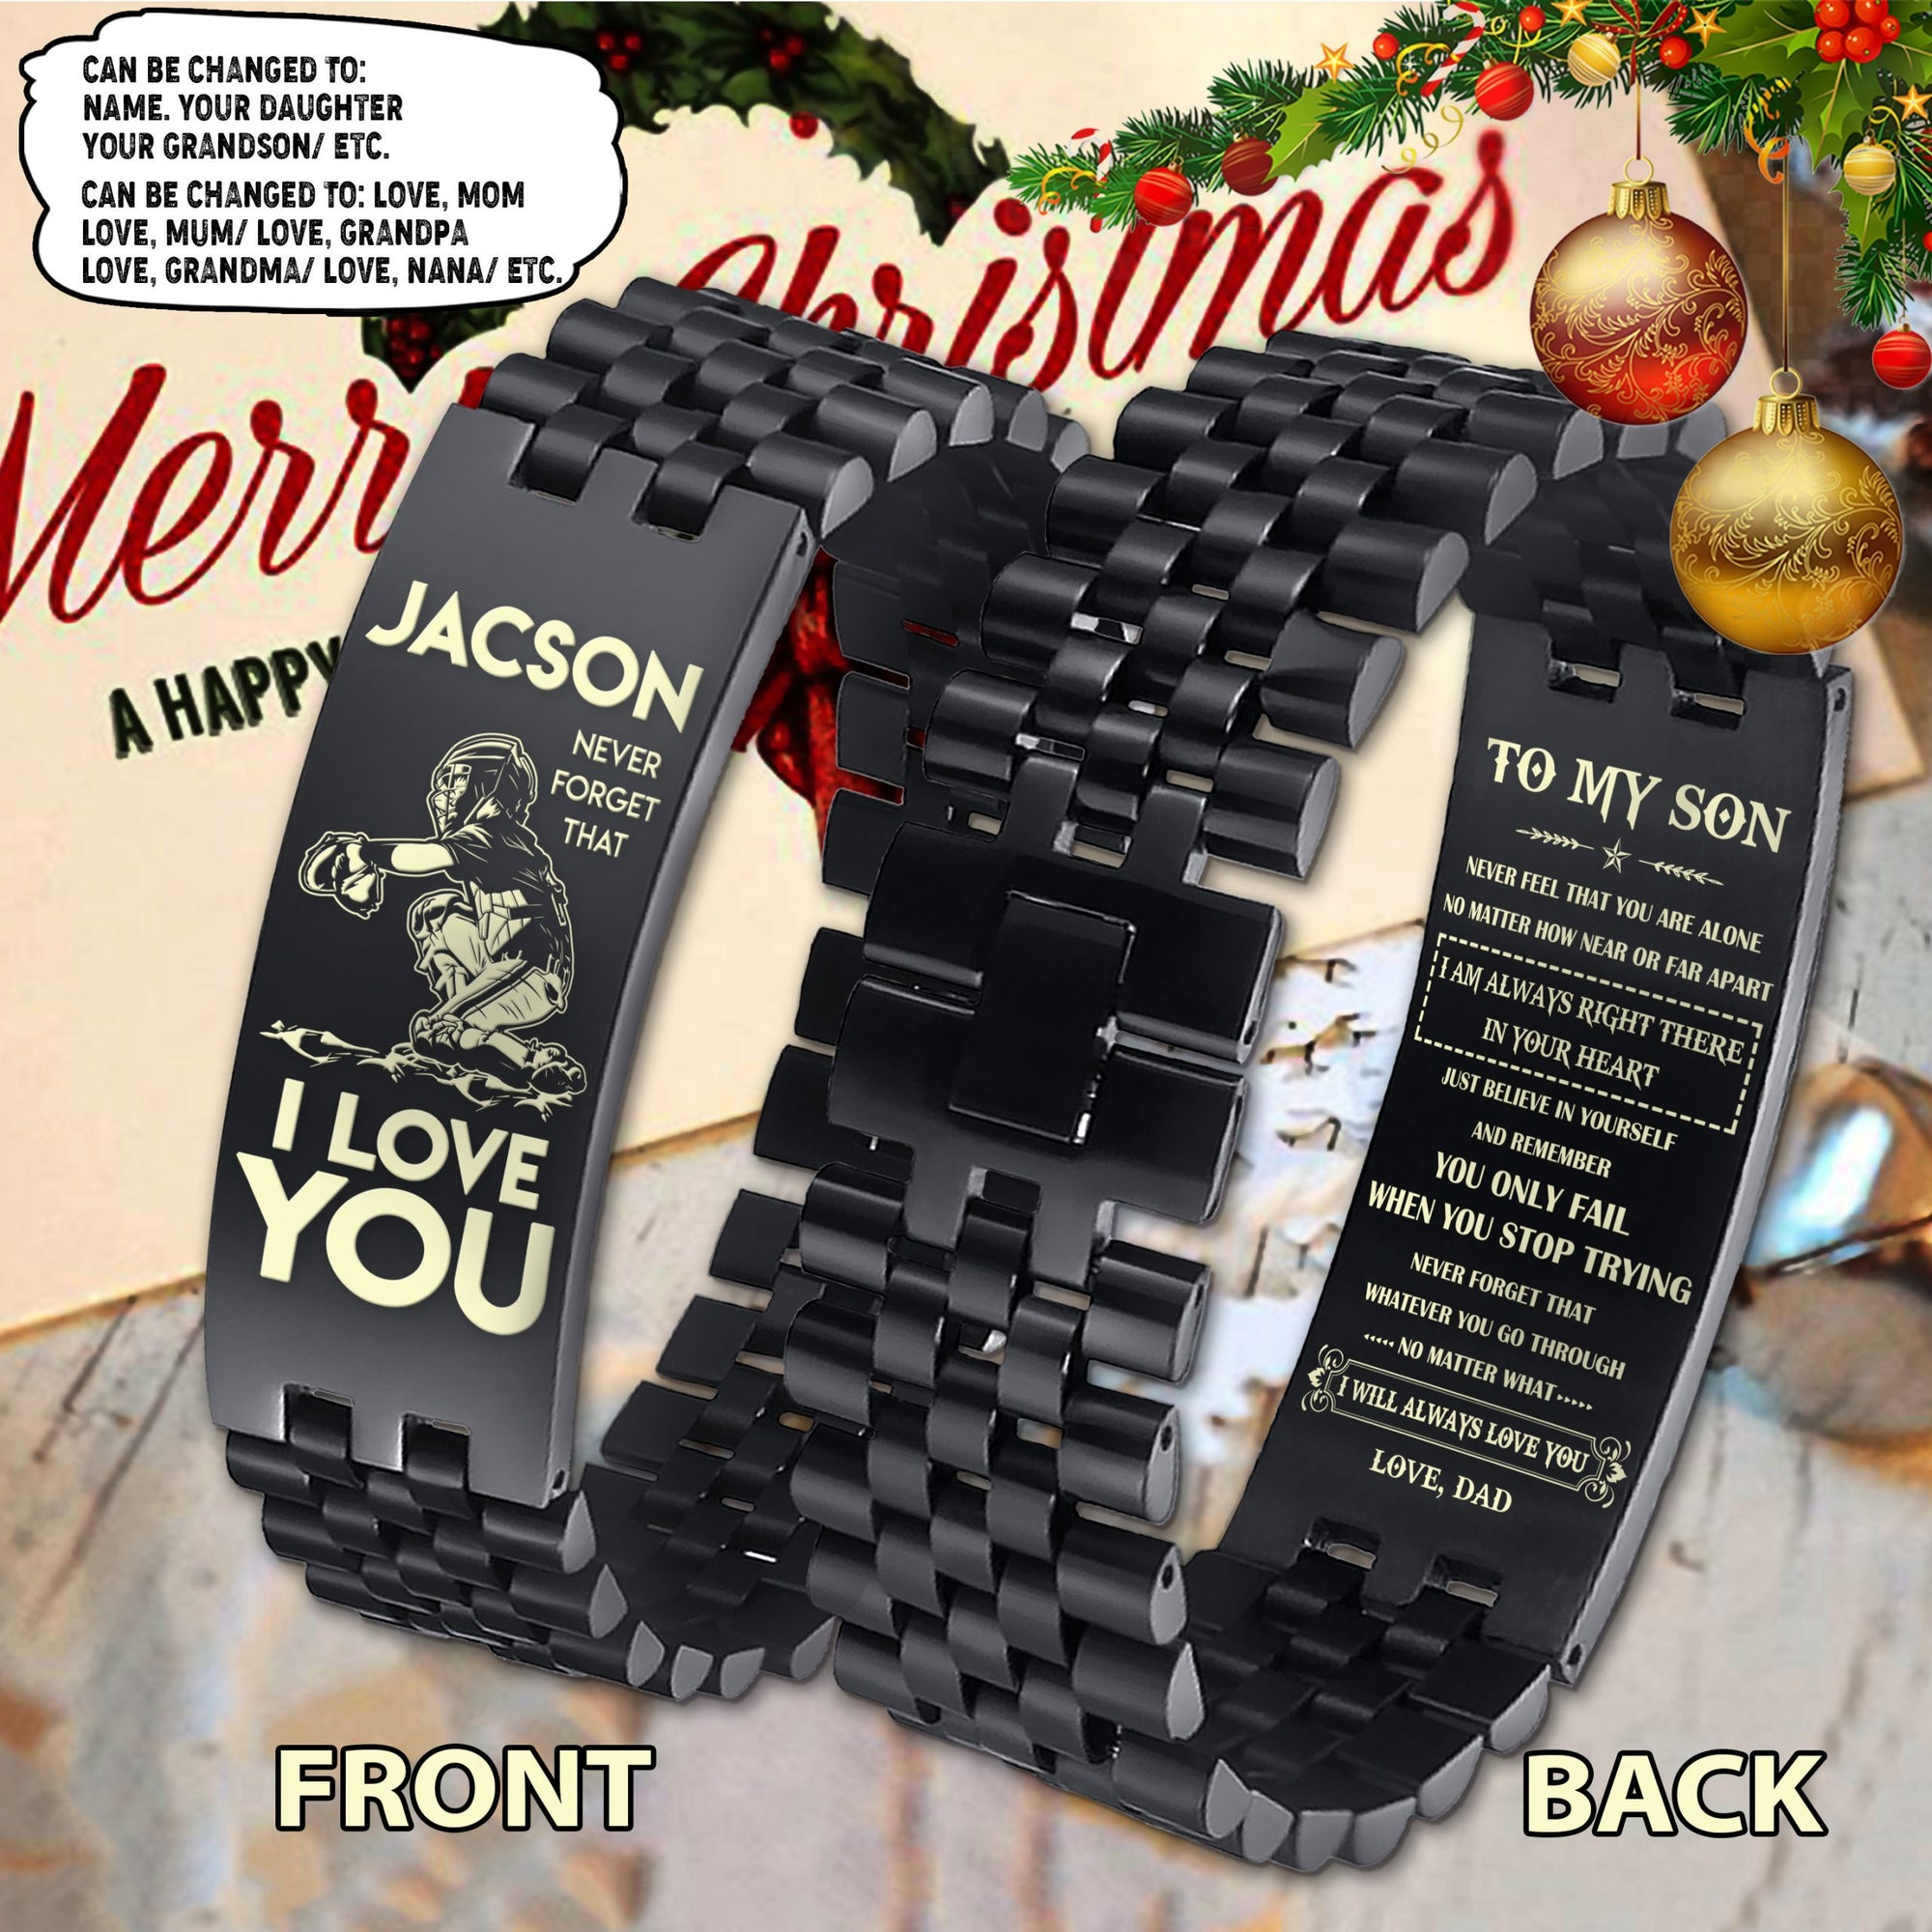 (LP286) CUSTOMIZABLE BASEBALL BRACELET 2 FACE - DAD TO SON- BELIEVE IN YOUR SELF- FREE SHIPPING FROM 2 ITEMS